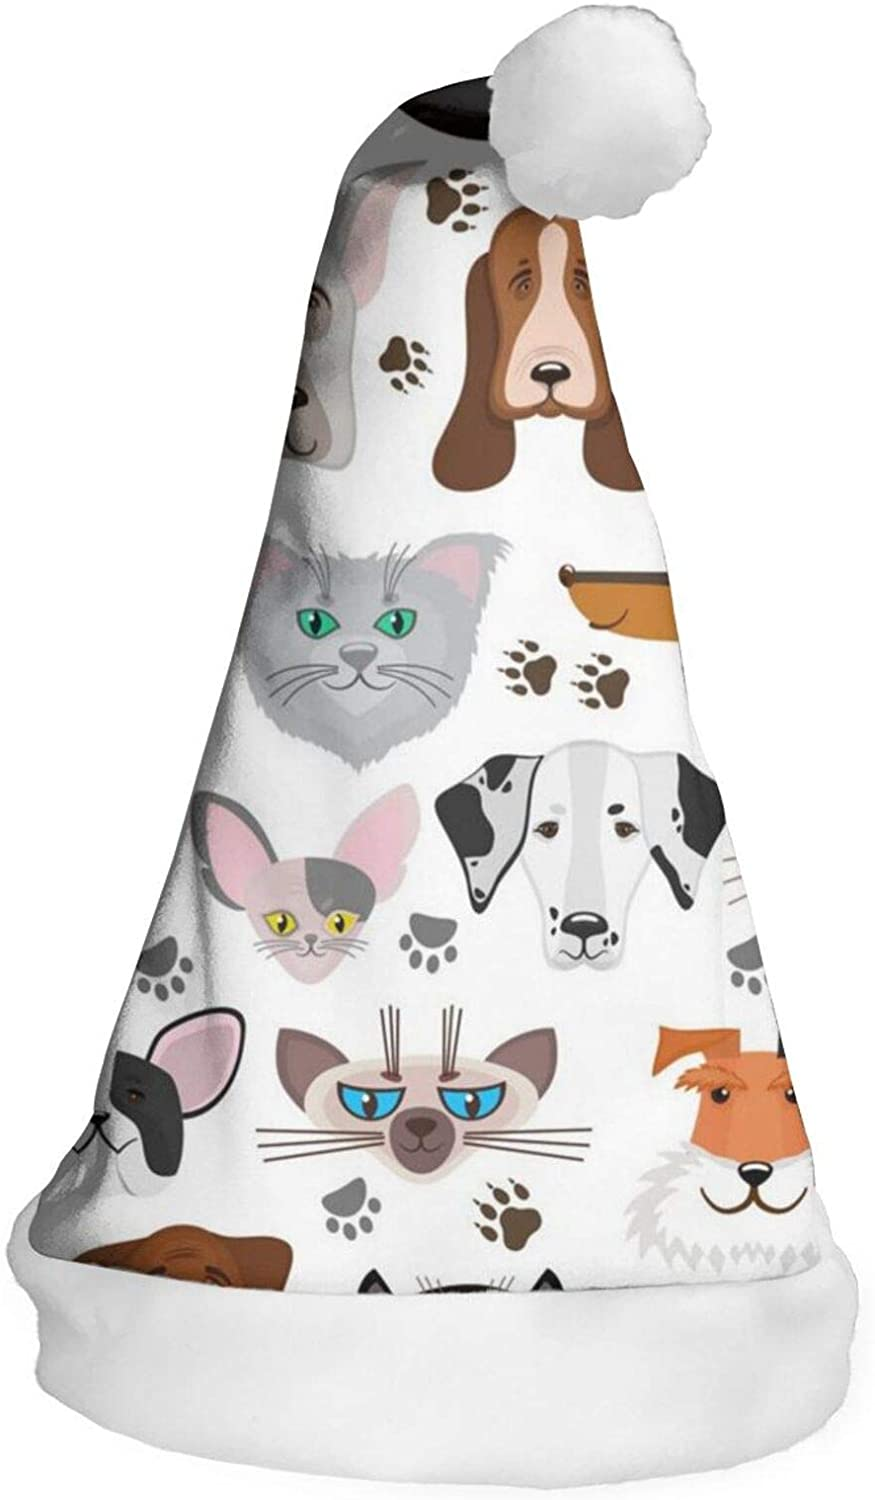 Dog and Cat Pets Animals Kids Santa Hat,New Years Eve Party Hats,Unisex Costume Accessories for Cosplay,Holiday Event,Birthday,Celebrations,Winter Holiday Party Supplies